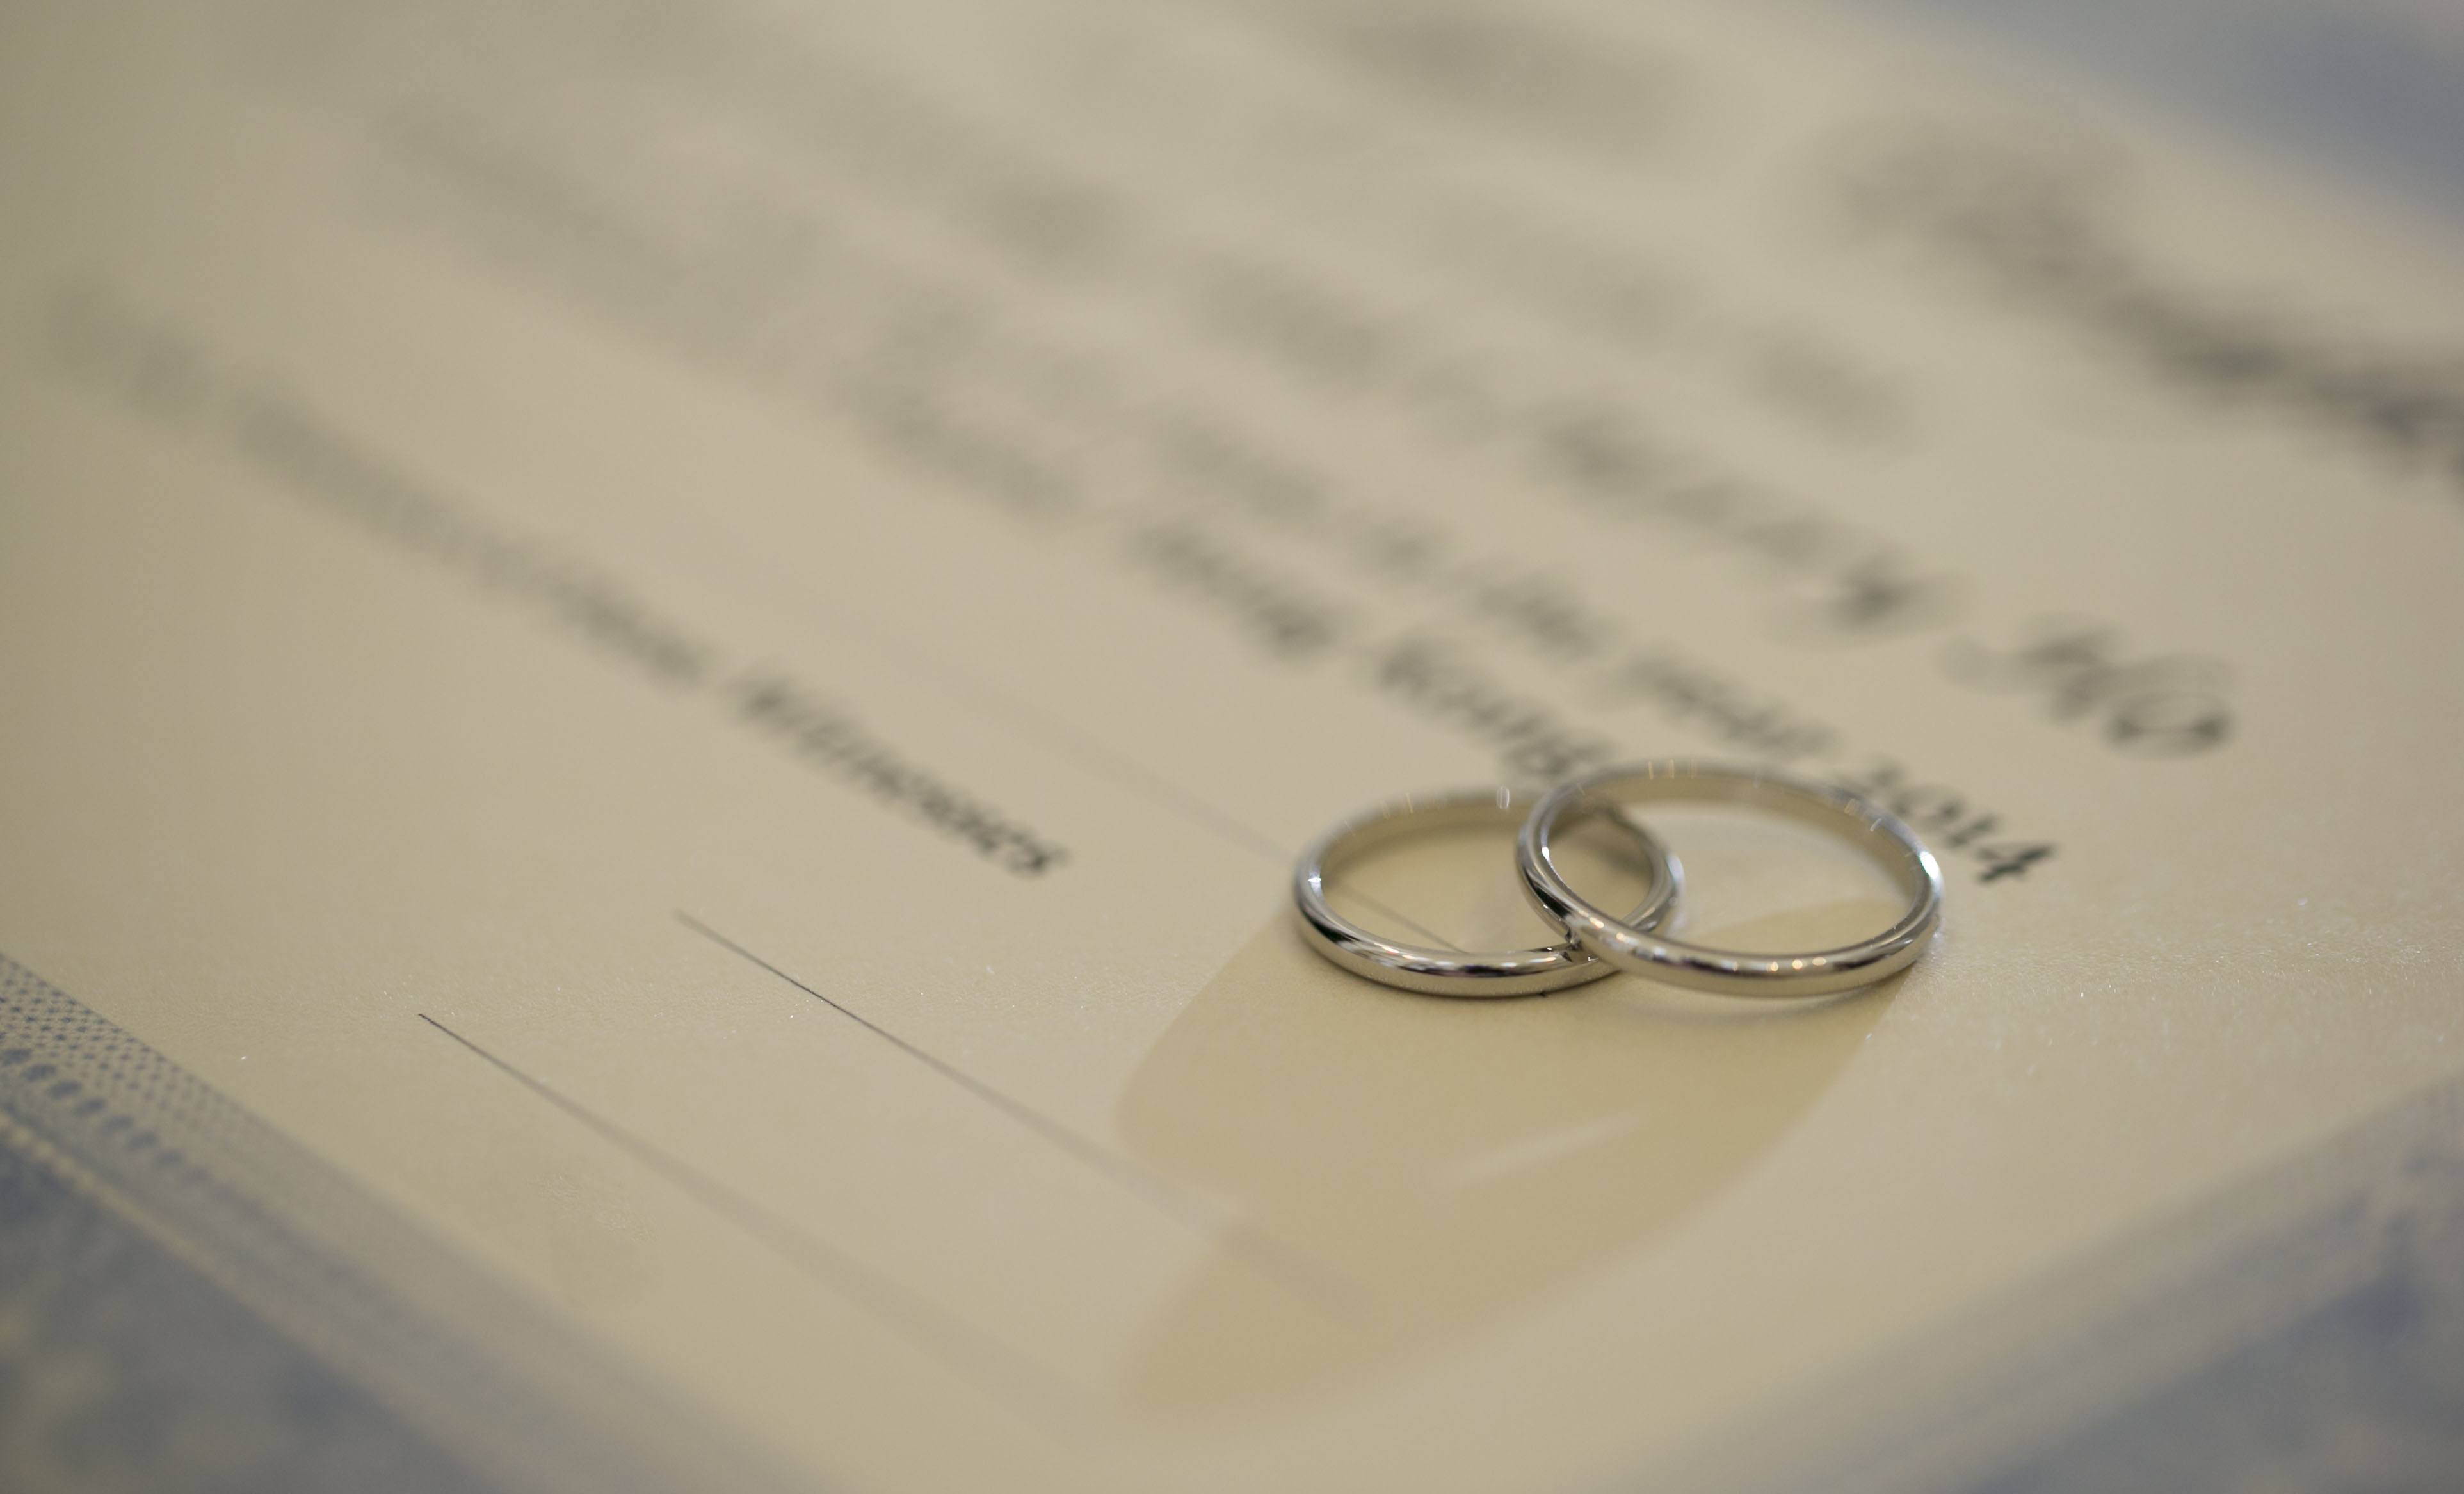 counties in alabama issuing same sex marriage licenses in Flint